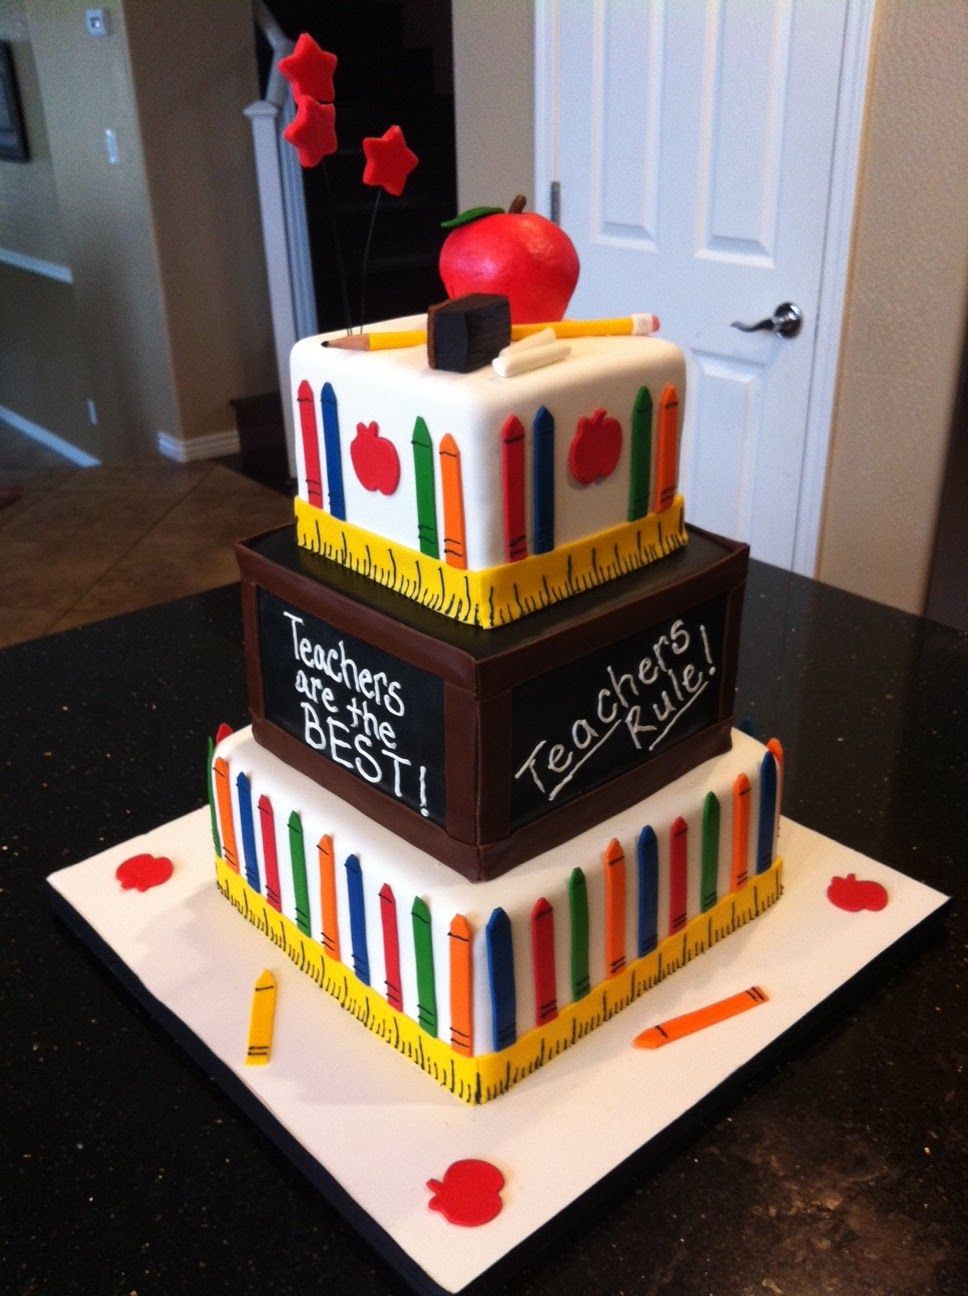 Best Cake Design Schools : SASSY CAKES - Your Fondant Cake Design Destination ...